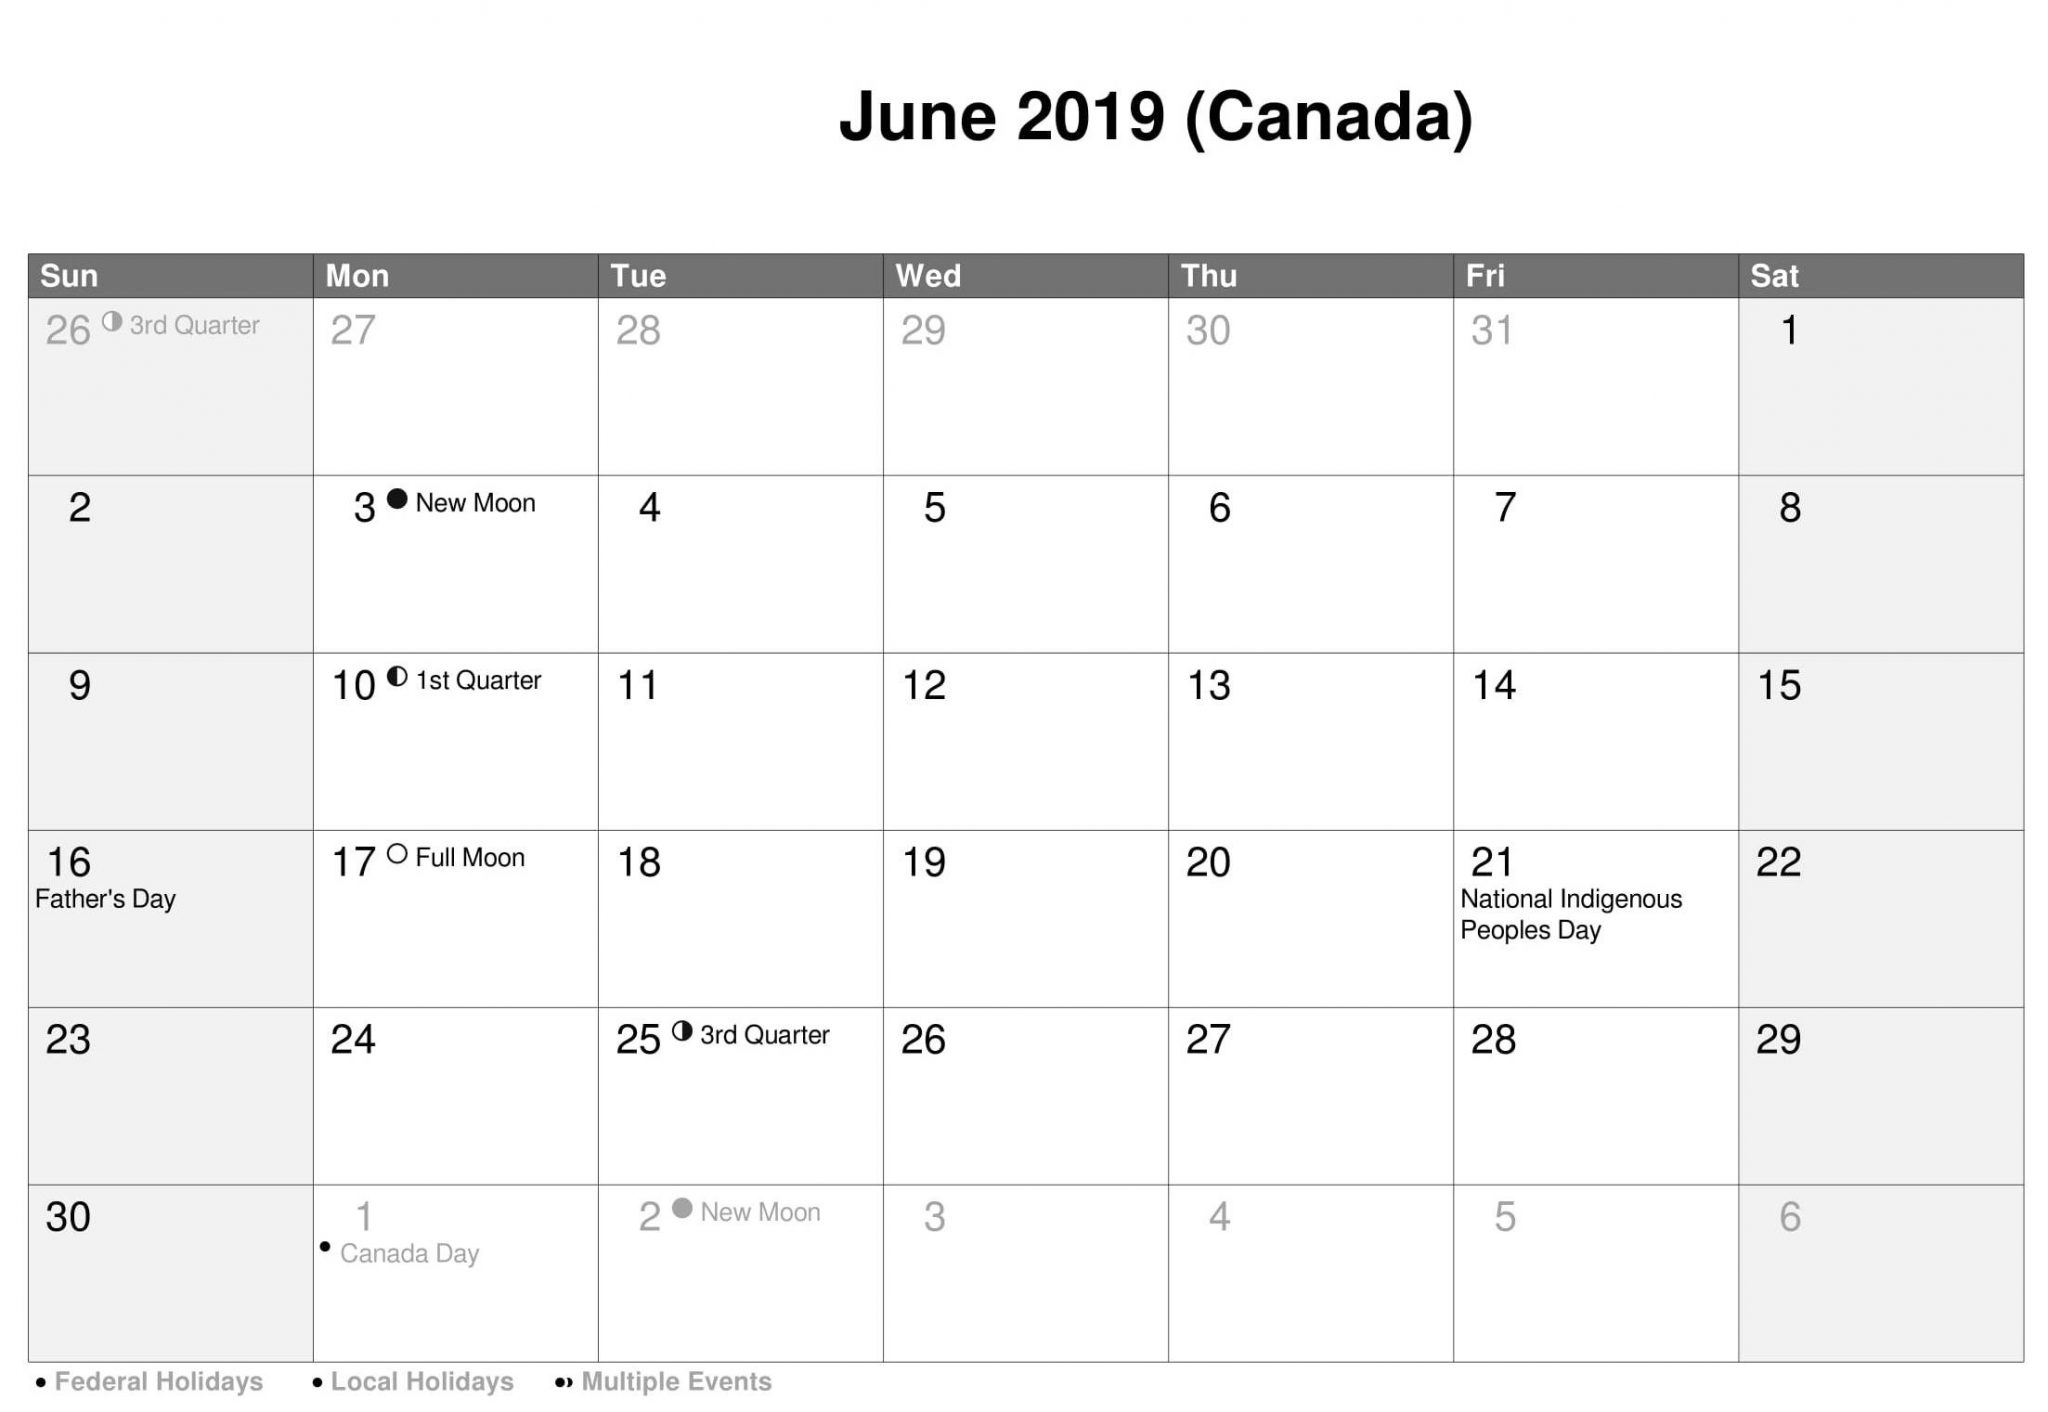 June 2019 Calendar Canada Bank Holidays